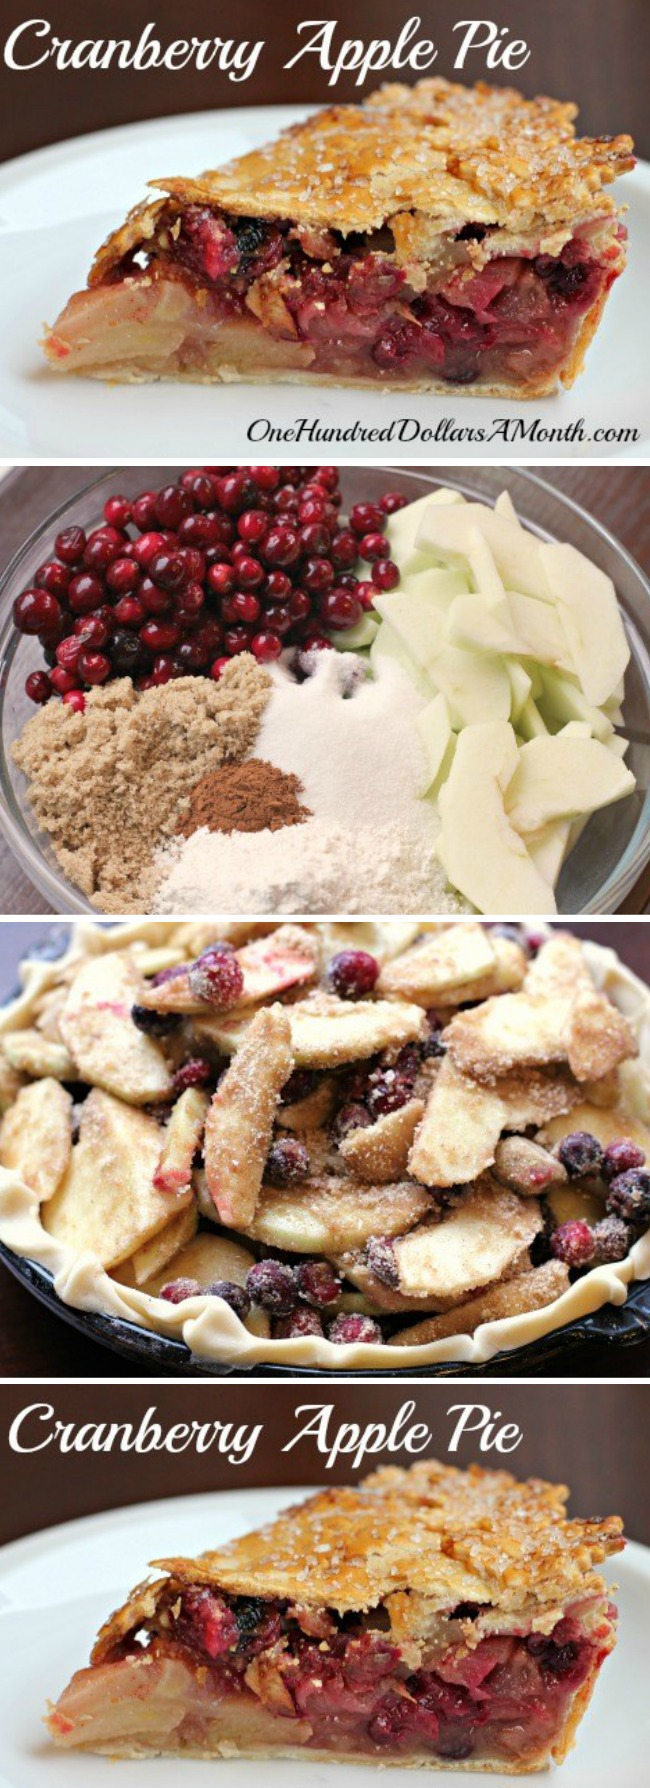 Thanksgiving Dessert Recipes – Cranberry Apple Pie